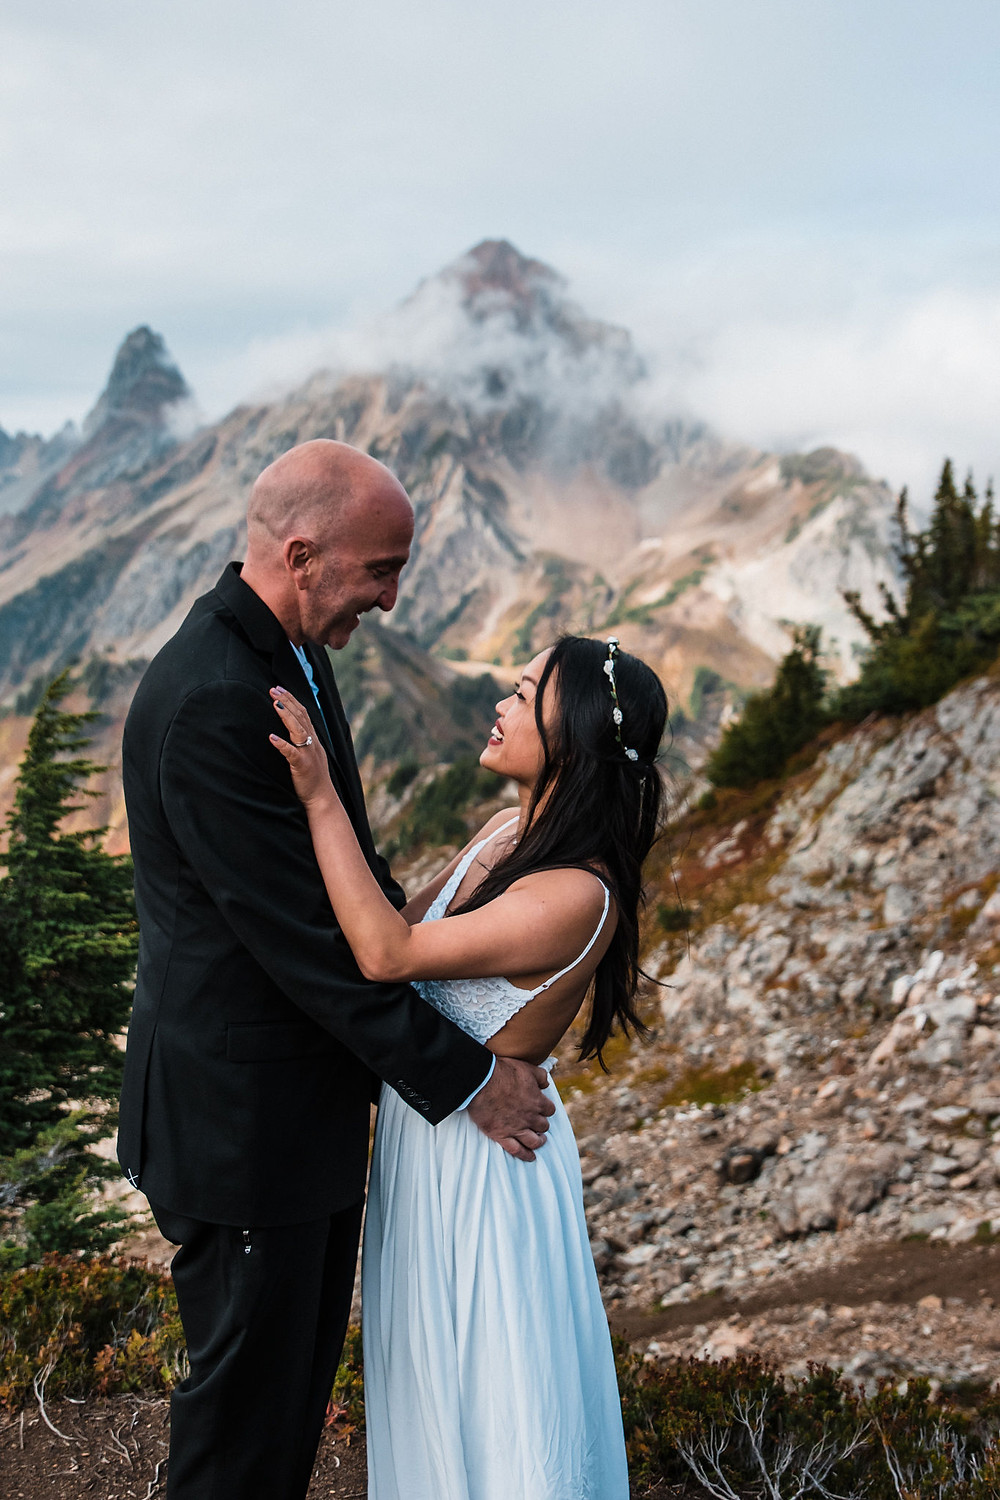 A couple smiling at one another on their adventure wedding day in the Mount Baker Wilderness